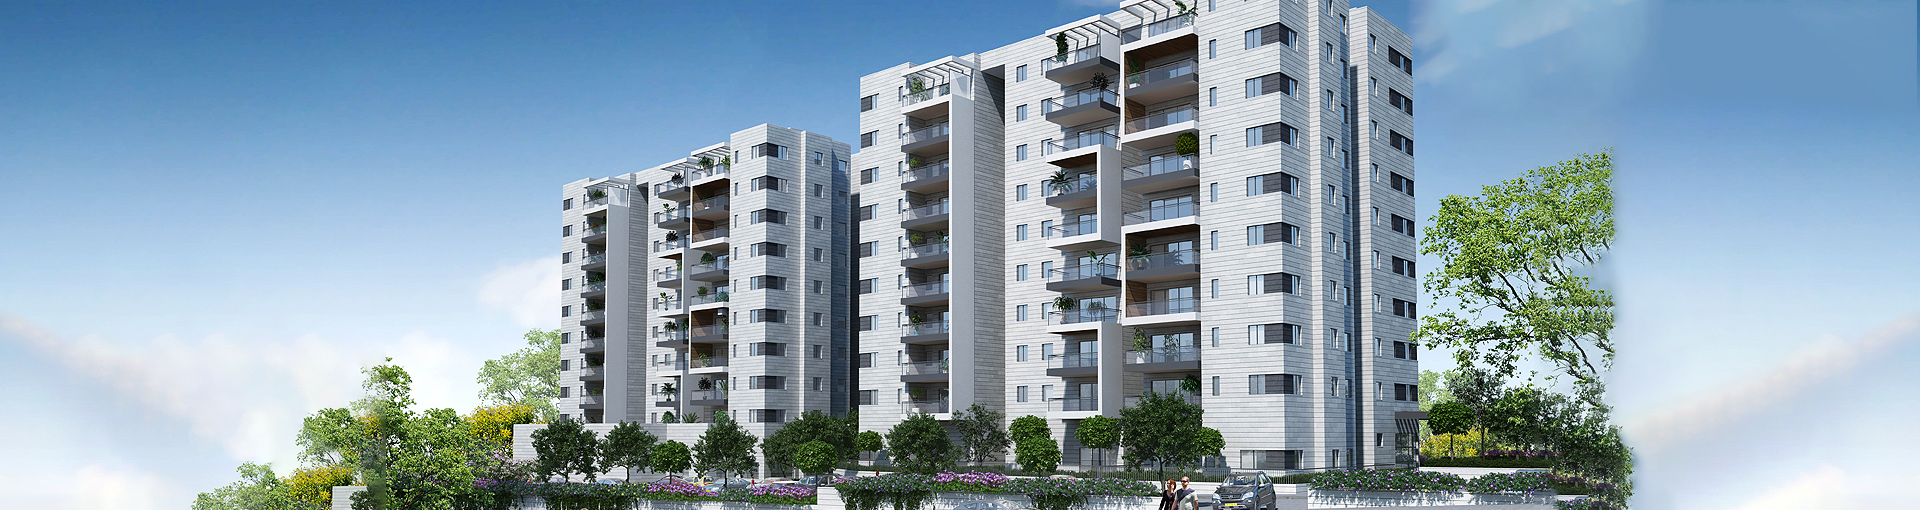 Appartments for sale in New Rehovot - Azorim